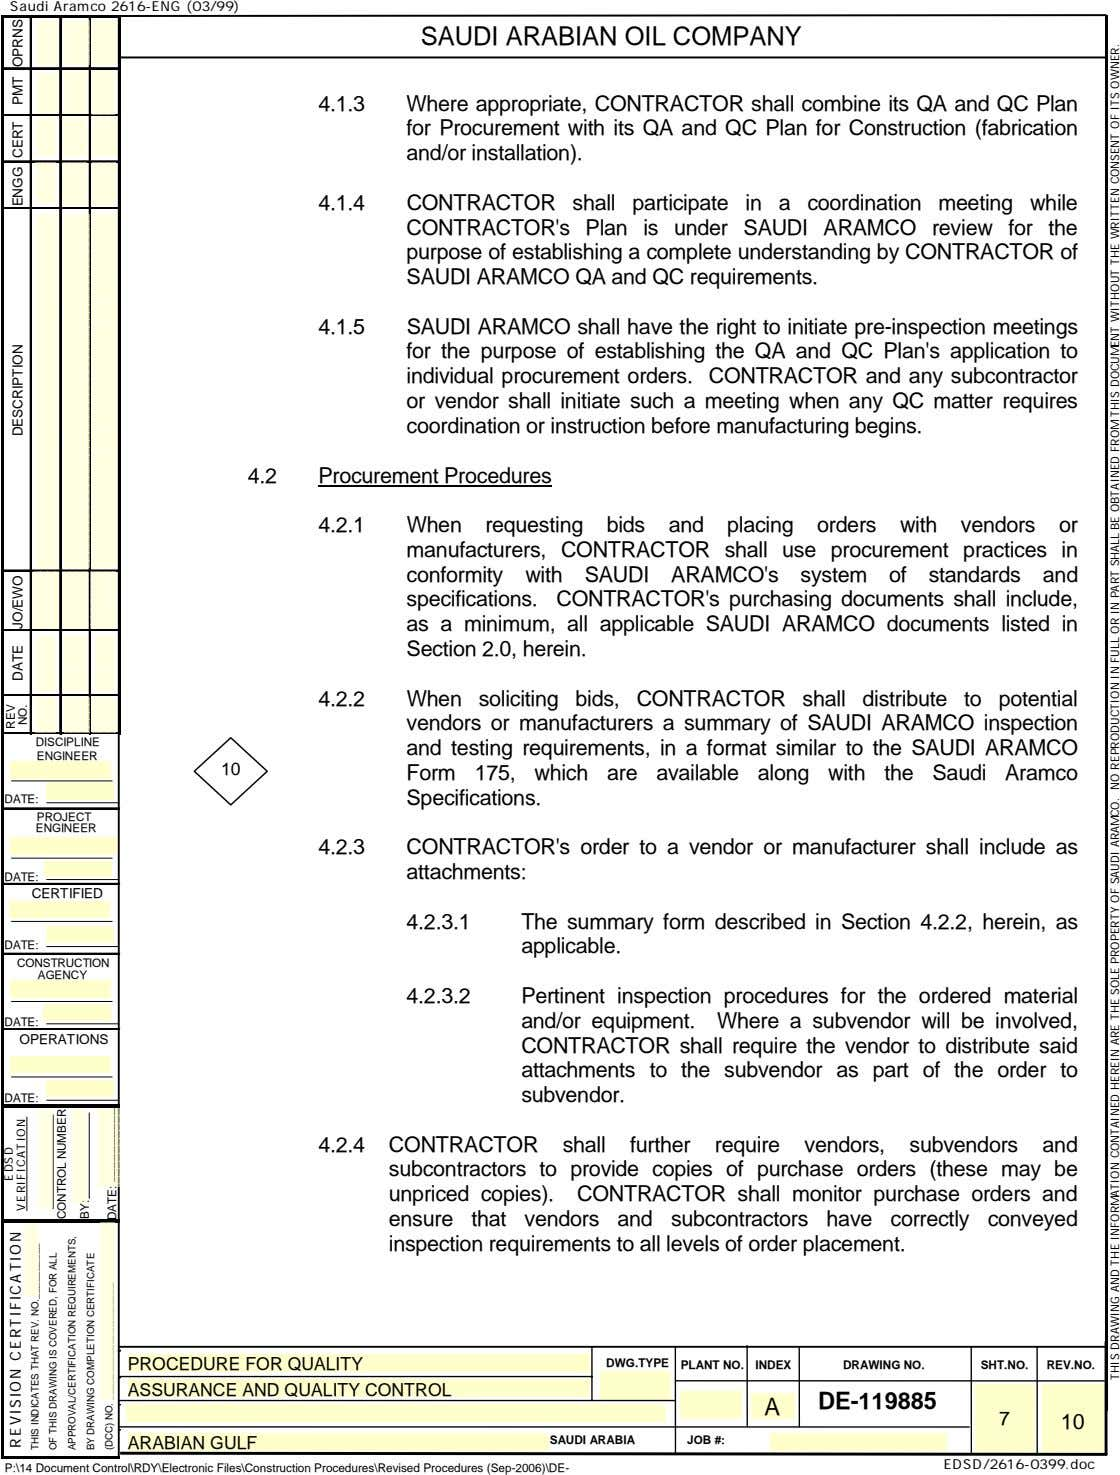 Saudi Aramco 2616-ENG (03/99) SAUDI ARABIAN OIL COMPANY 4.1.3 Where appropriate, CONTRACTOR shall combine its